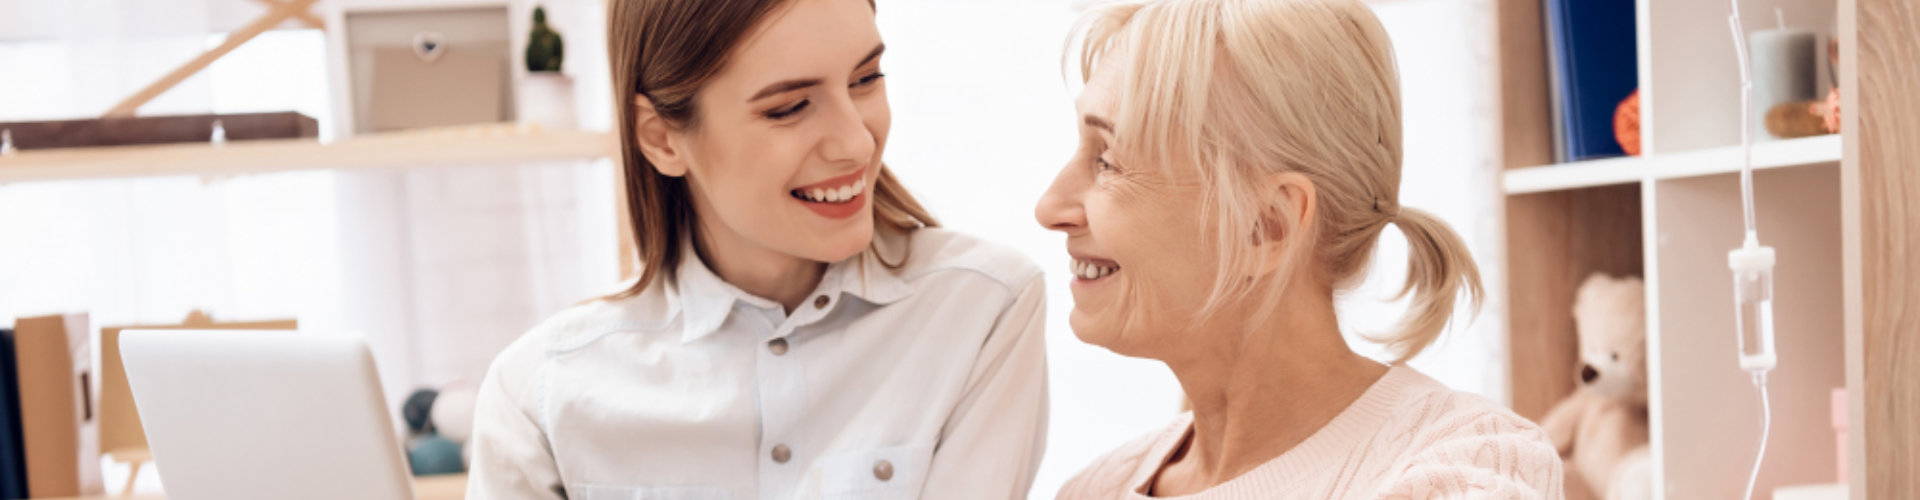 nurse and elderly smiling at each other